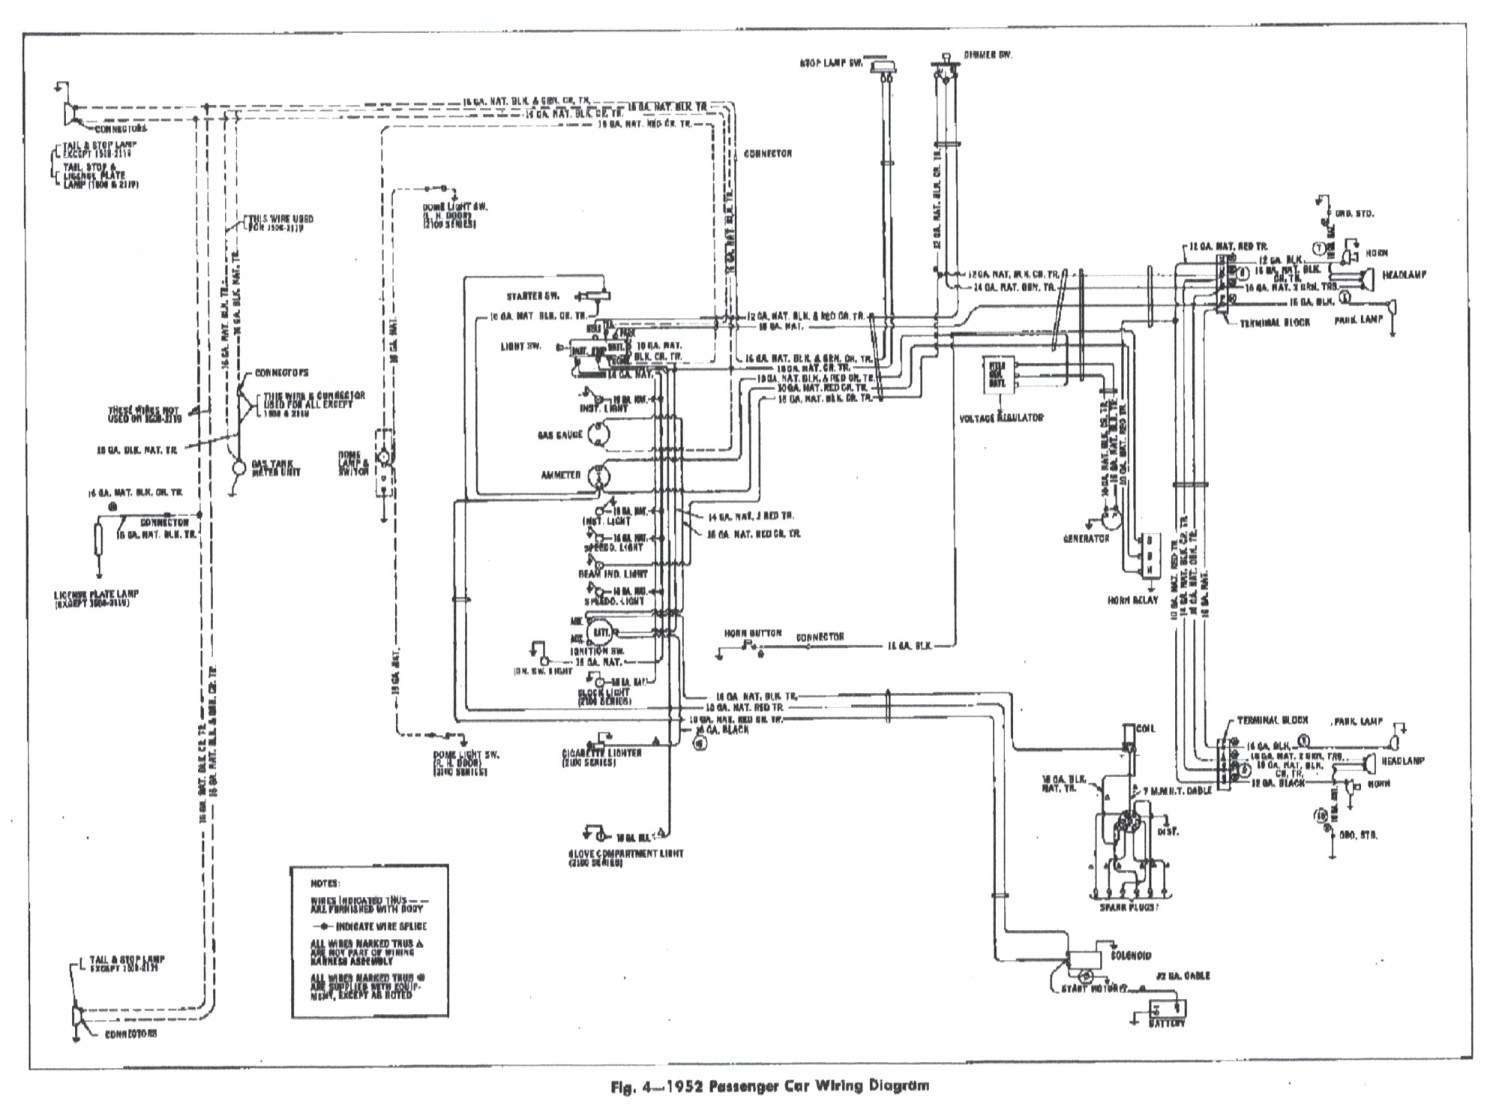 [MG_0359] Wiring Diagram For 1940 Chevy Business Coupe Get